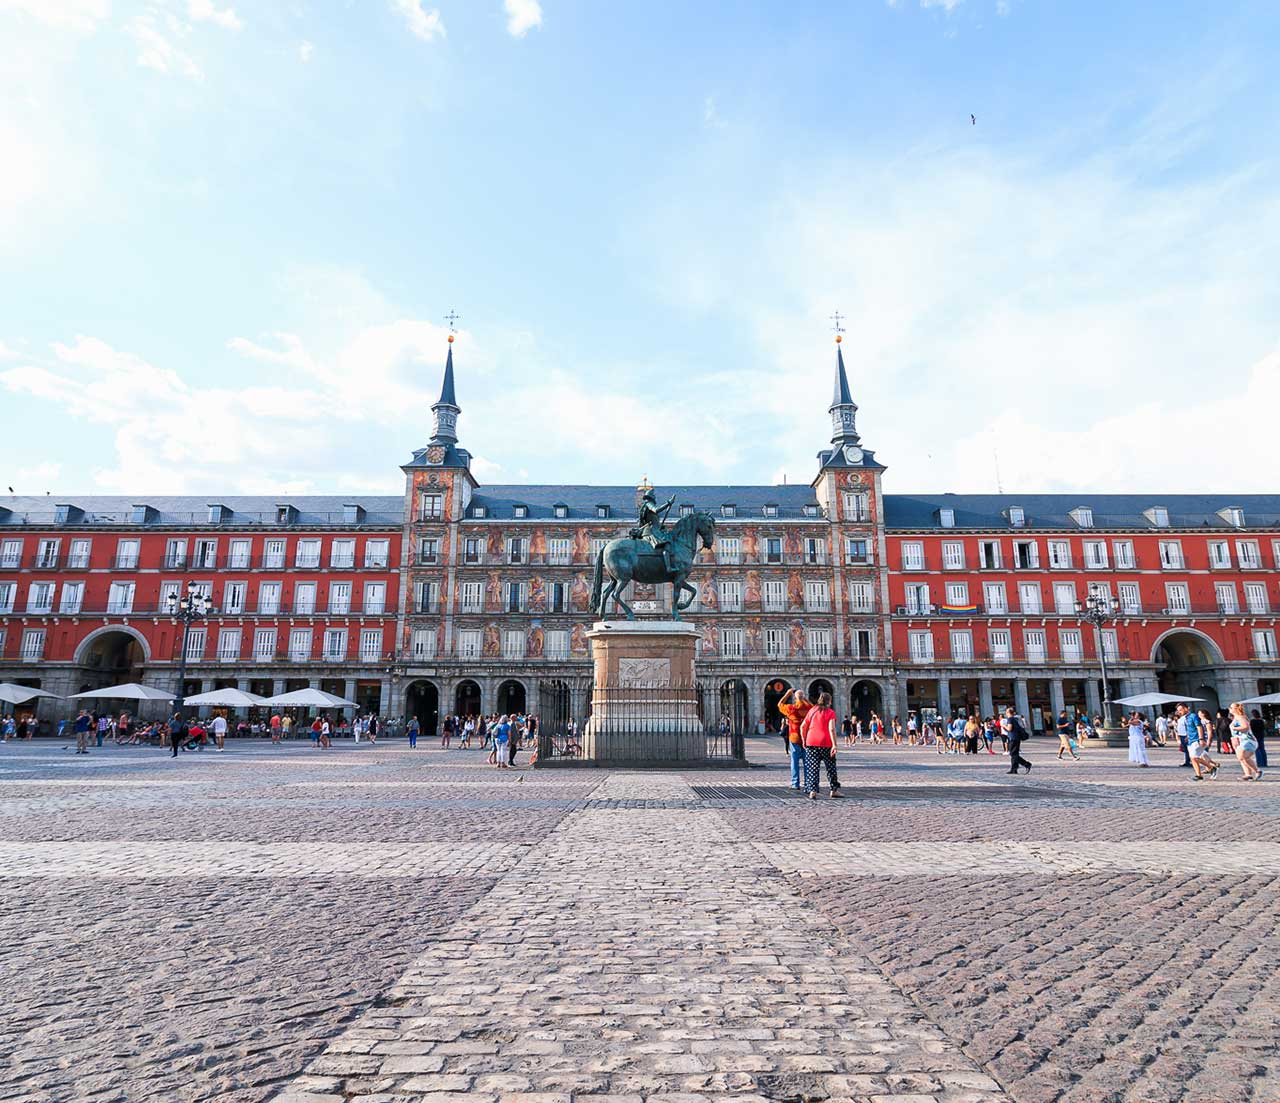 Student excursions in the rest of Spain